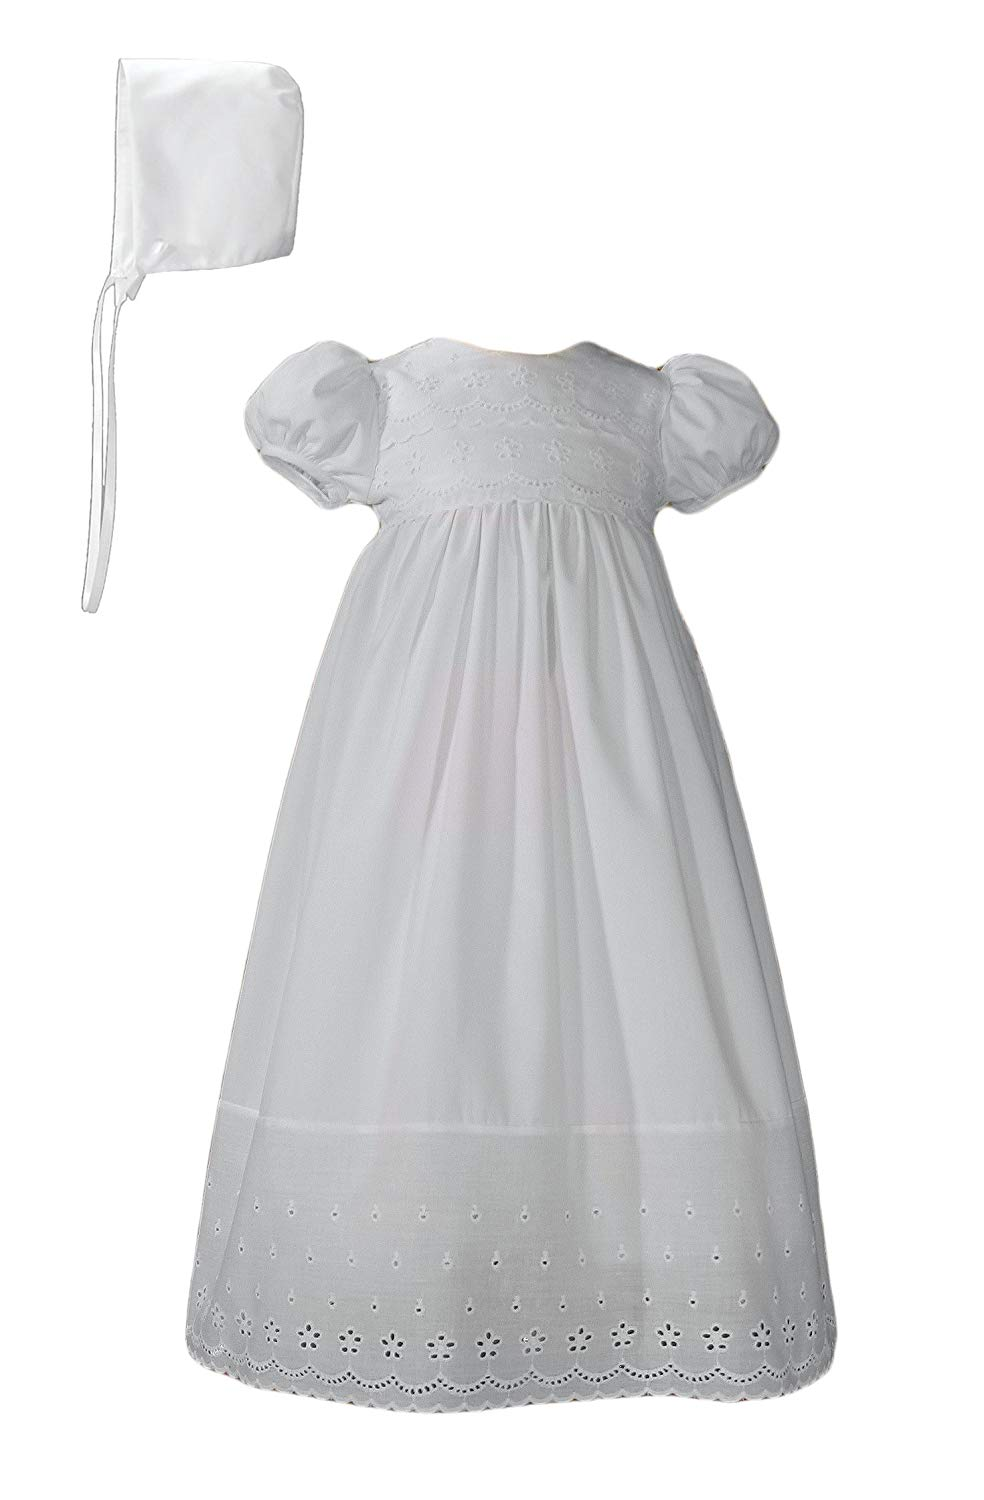 Little Things Mean A Lot 100% Cotton Dress Christening Gown Baptism Gown with Lace Border